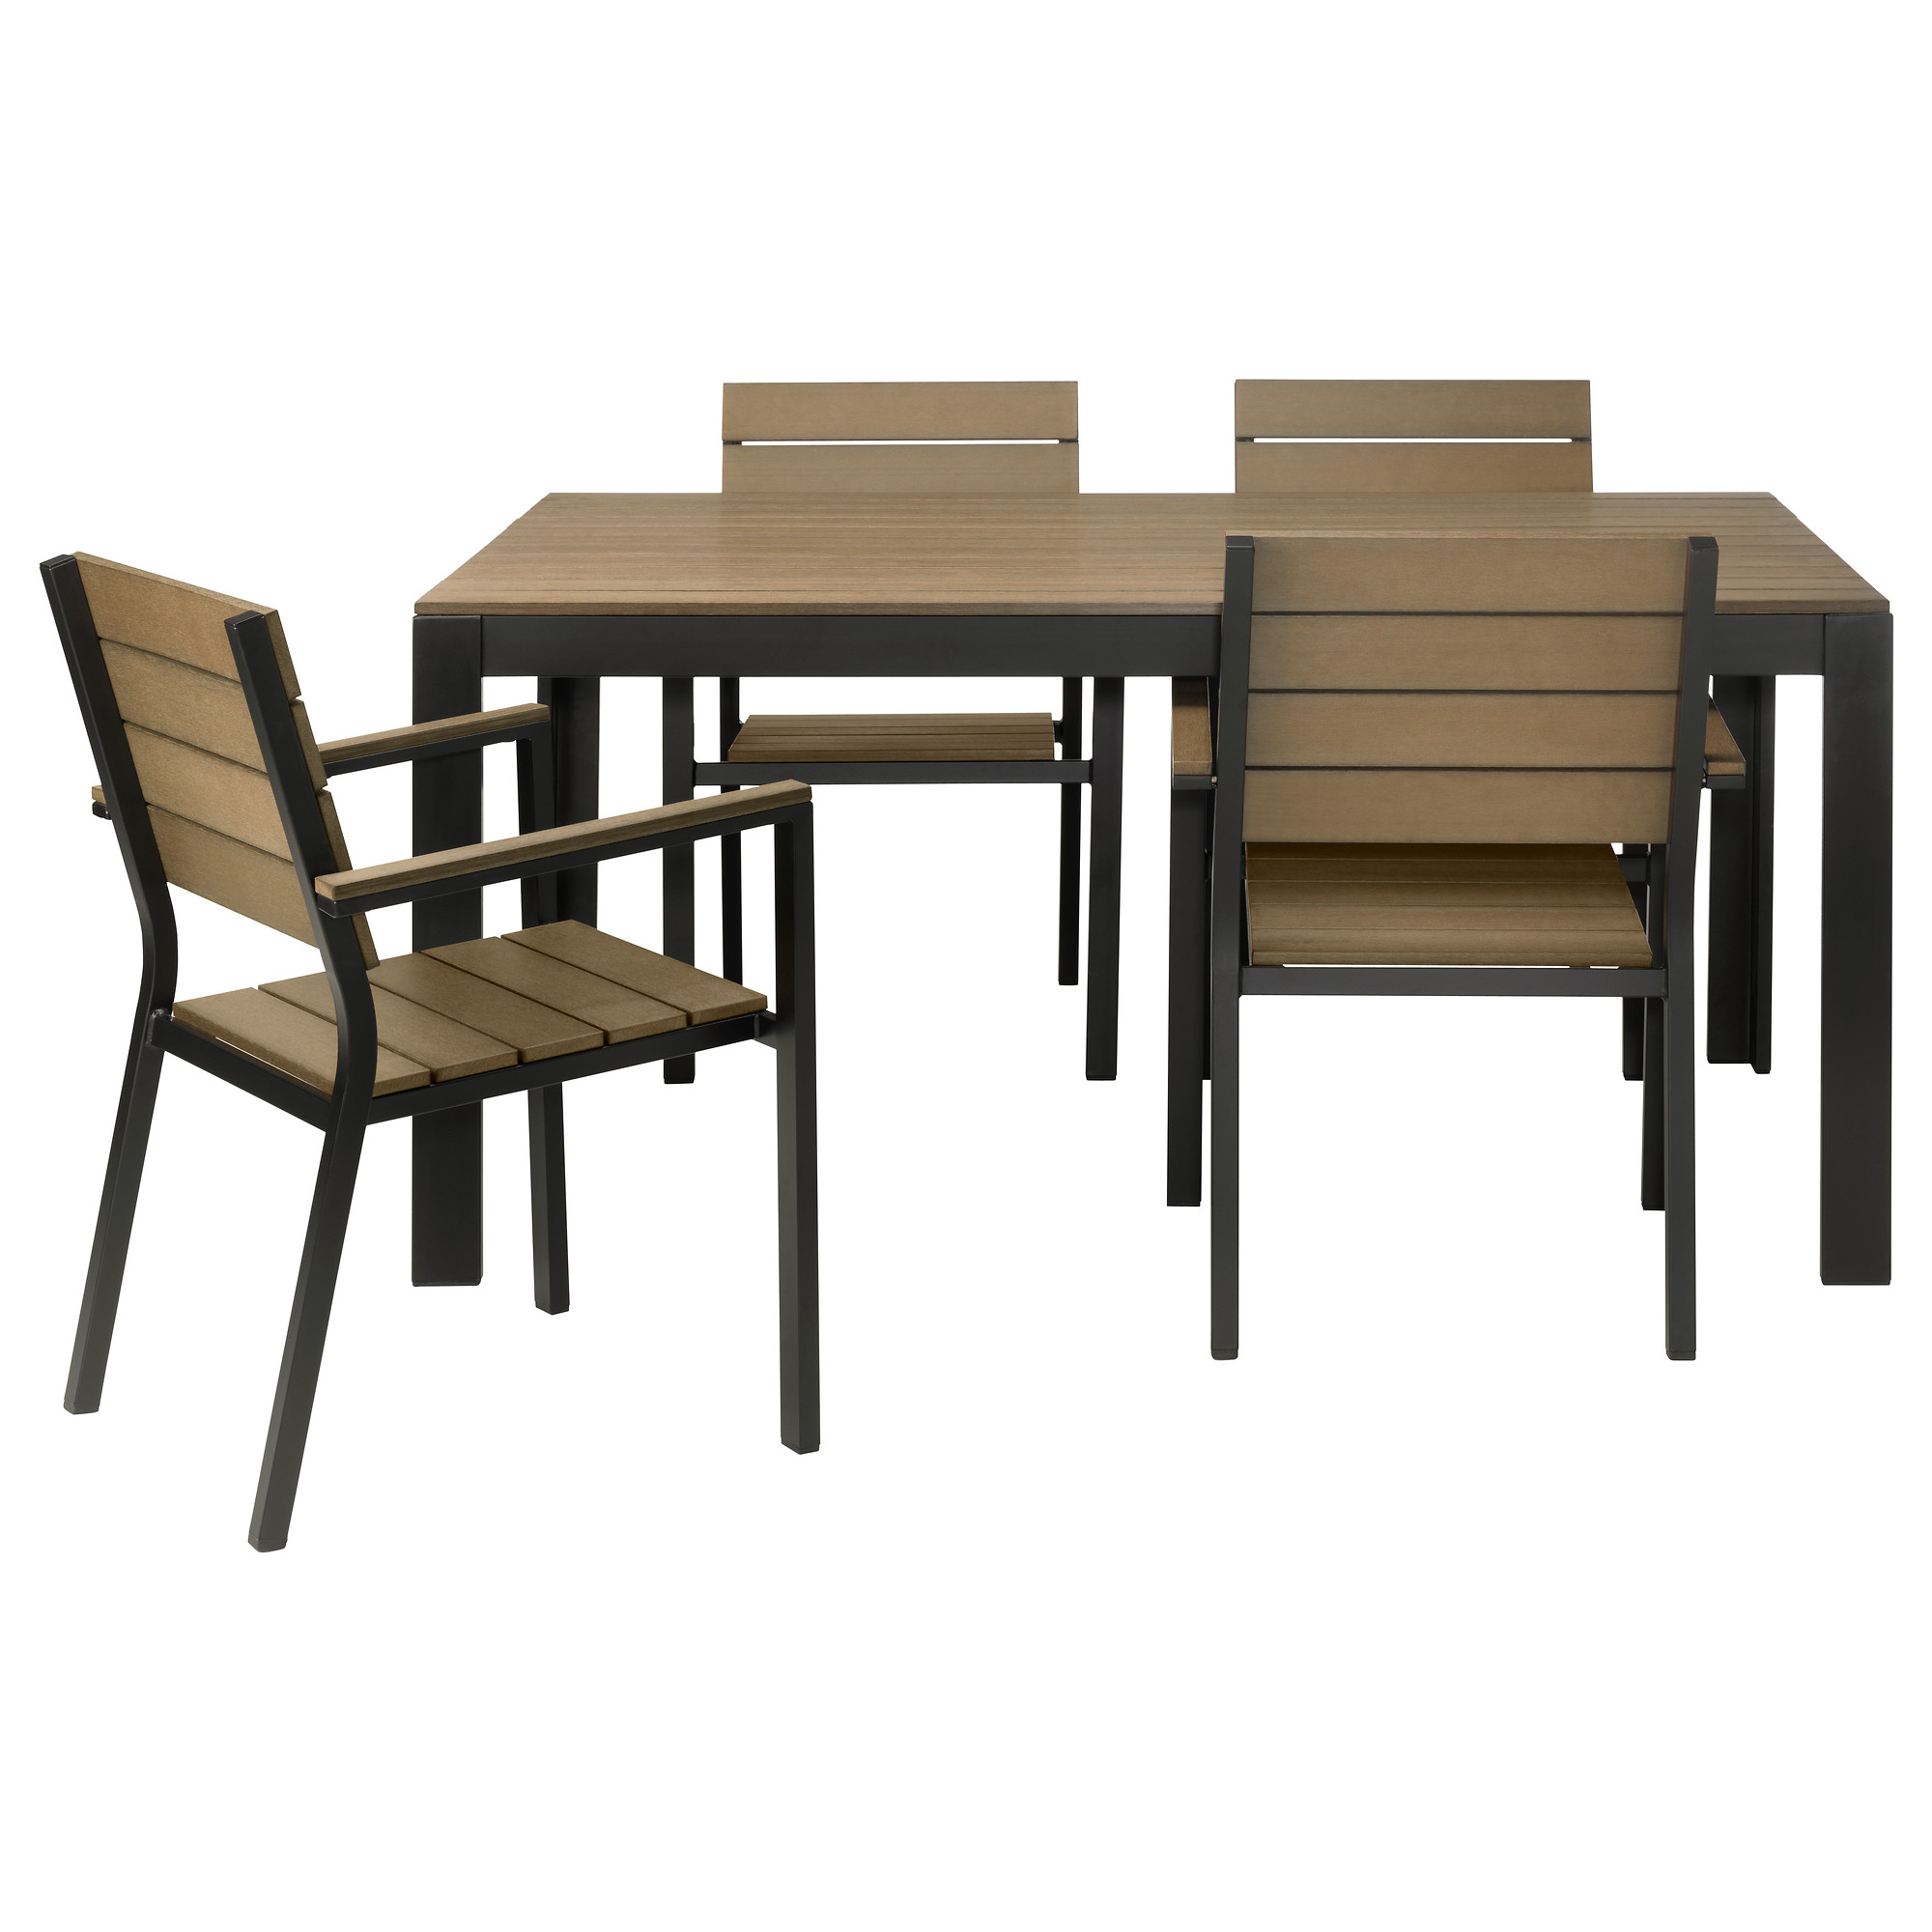 Outdoor table and chairs -